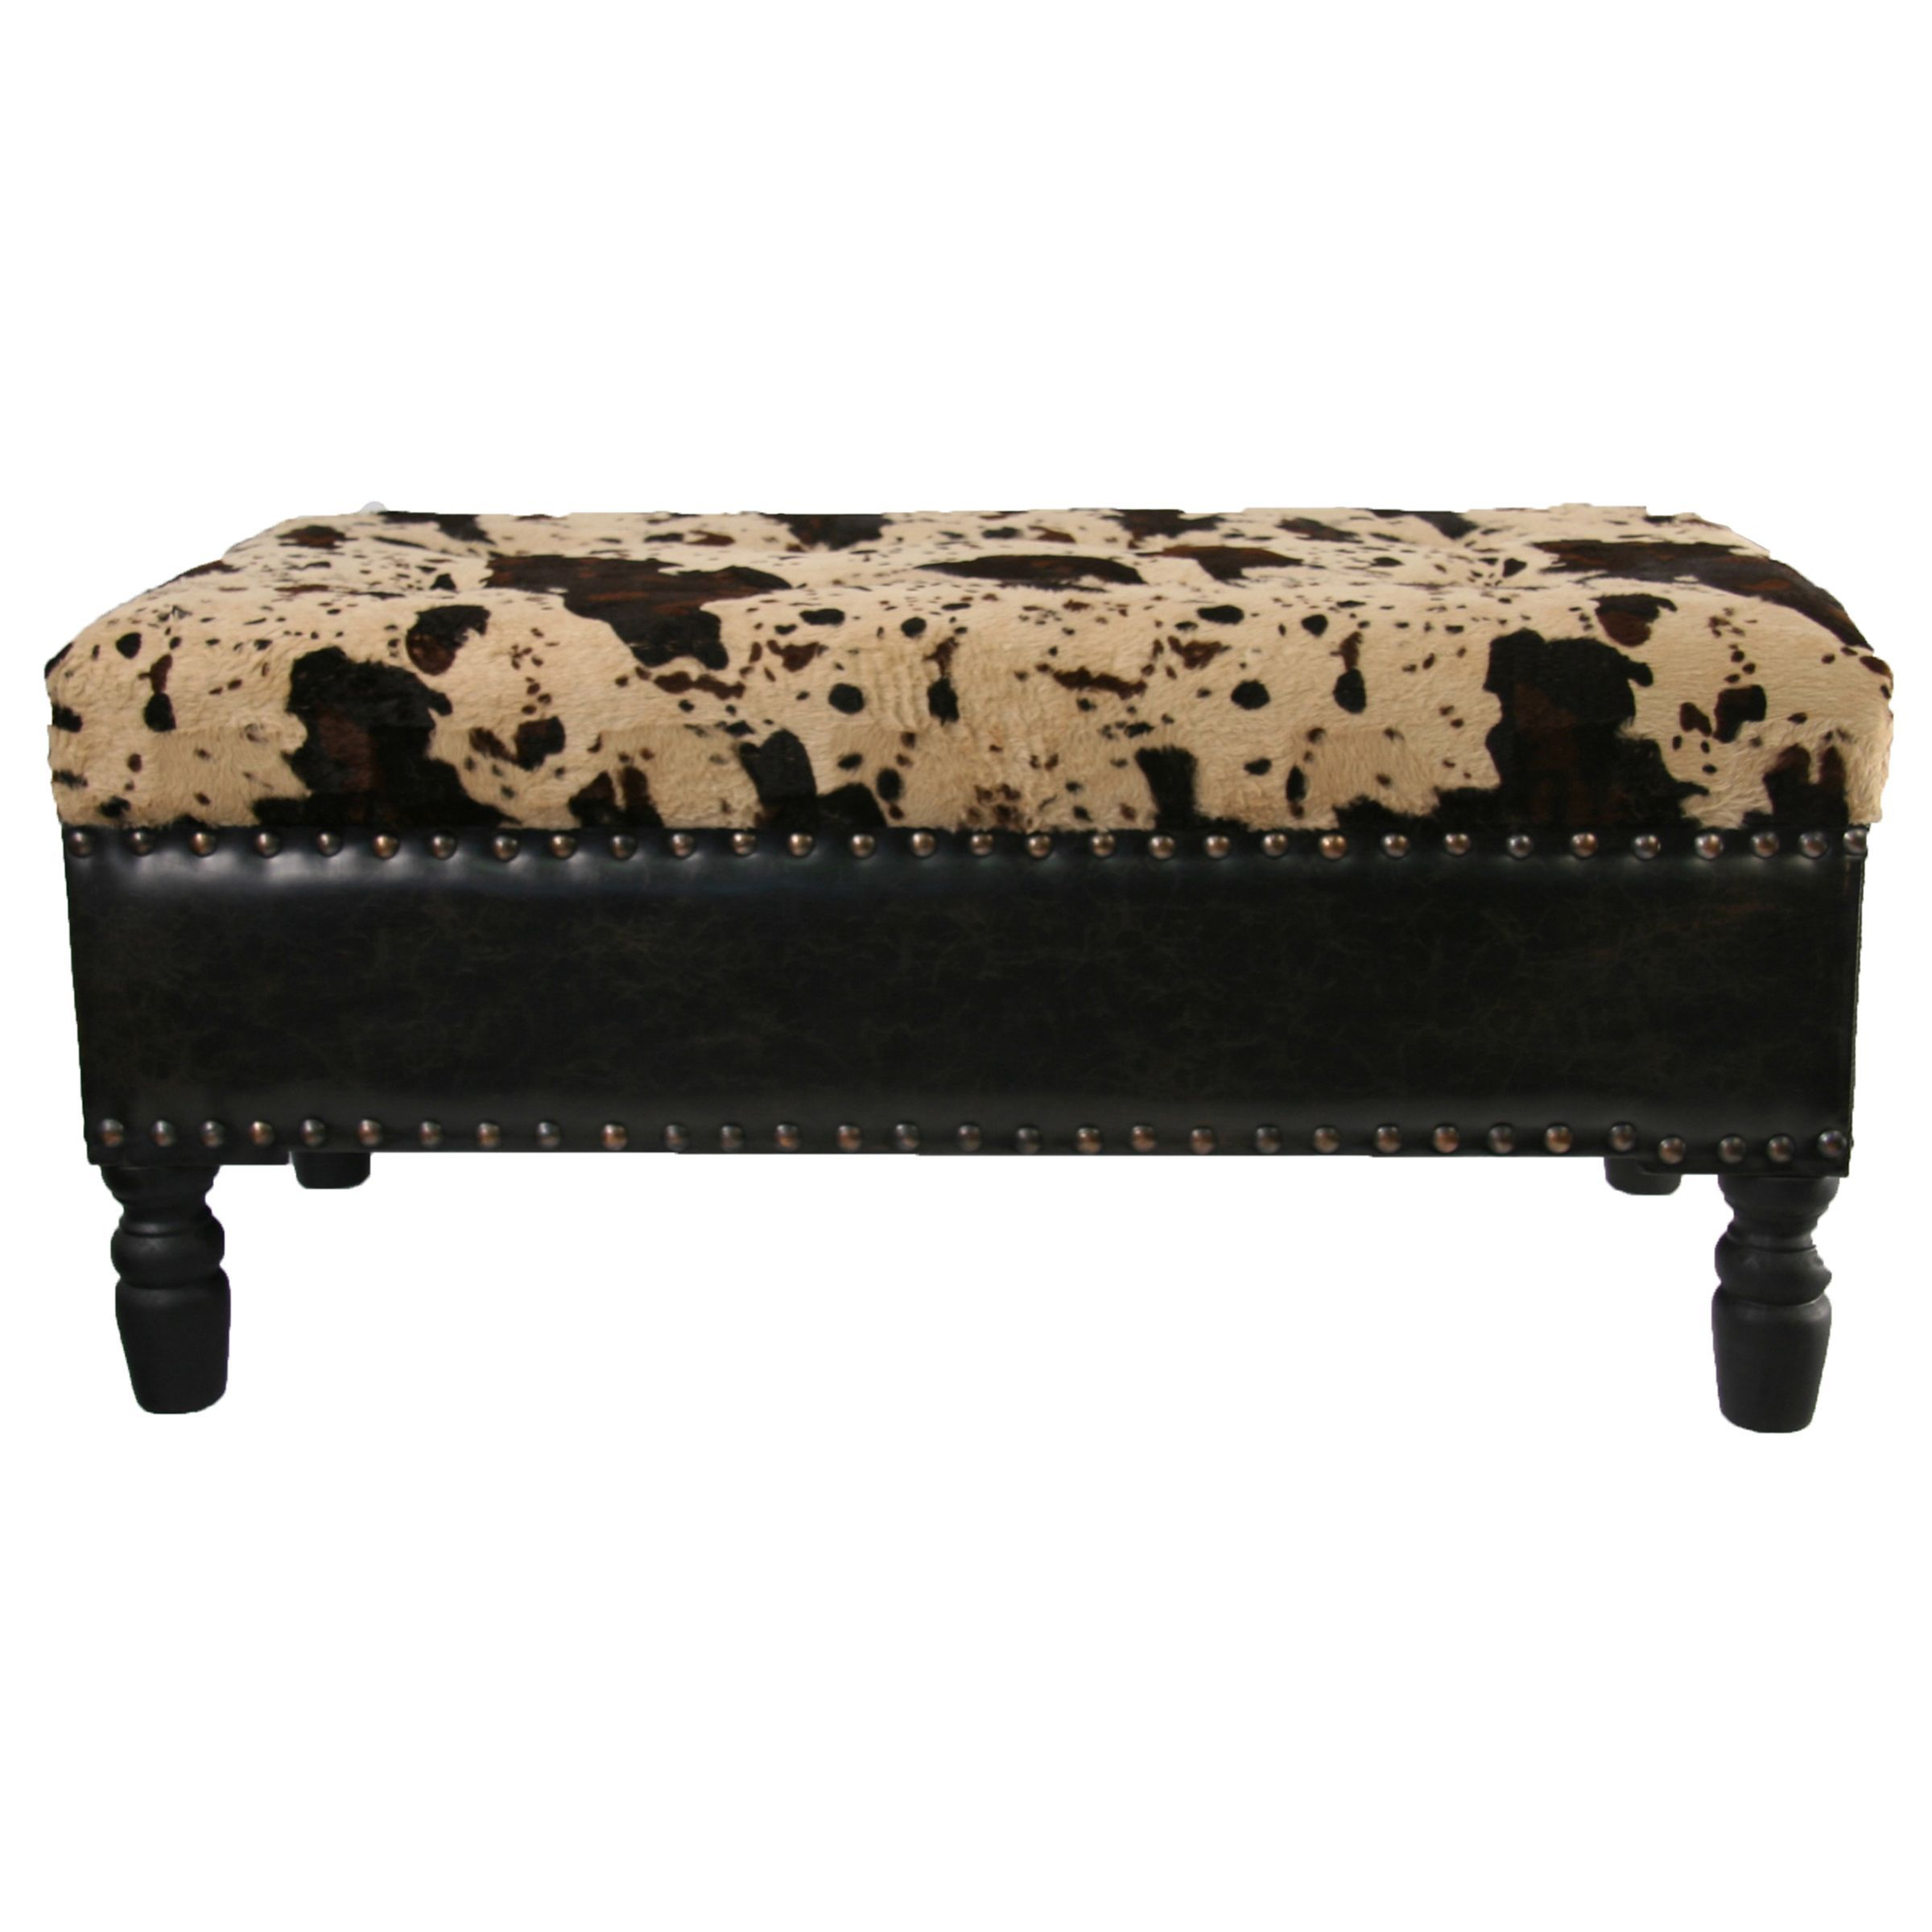 Overstock Com Online Shopping Bedding Furniture Electronics Jewelry Clothing More Faux Cowhide Leather Storage Bench Ranch House Decor